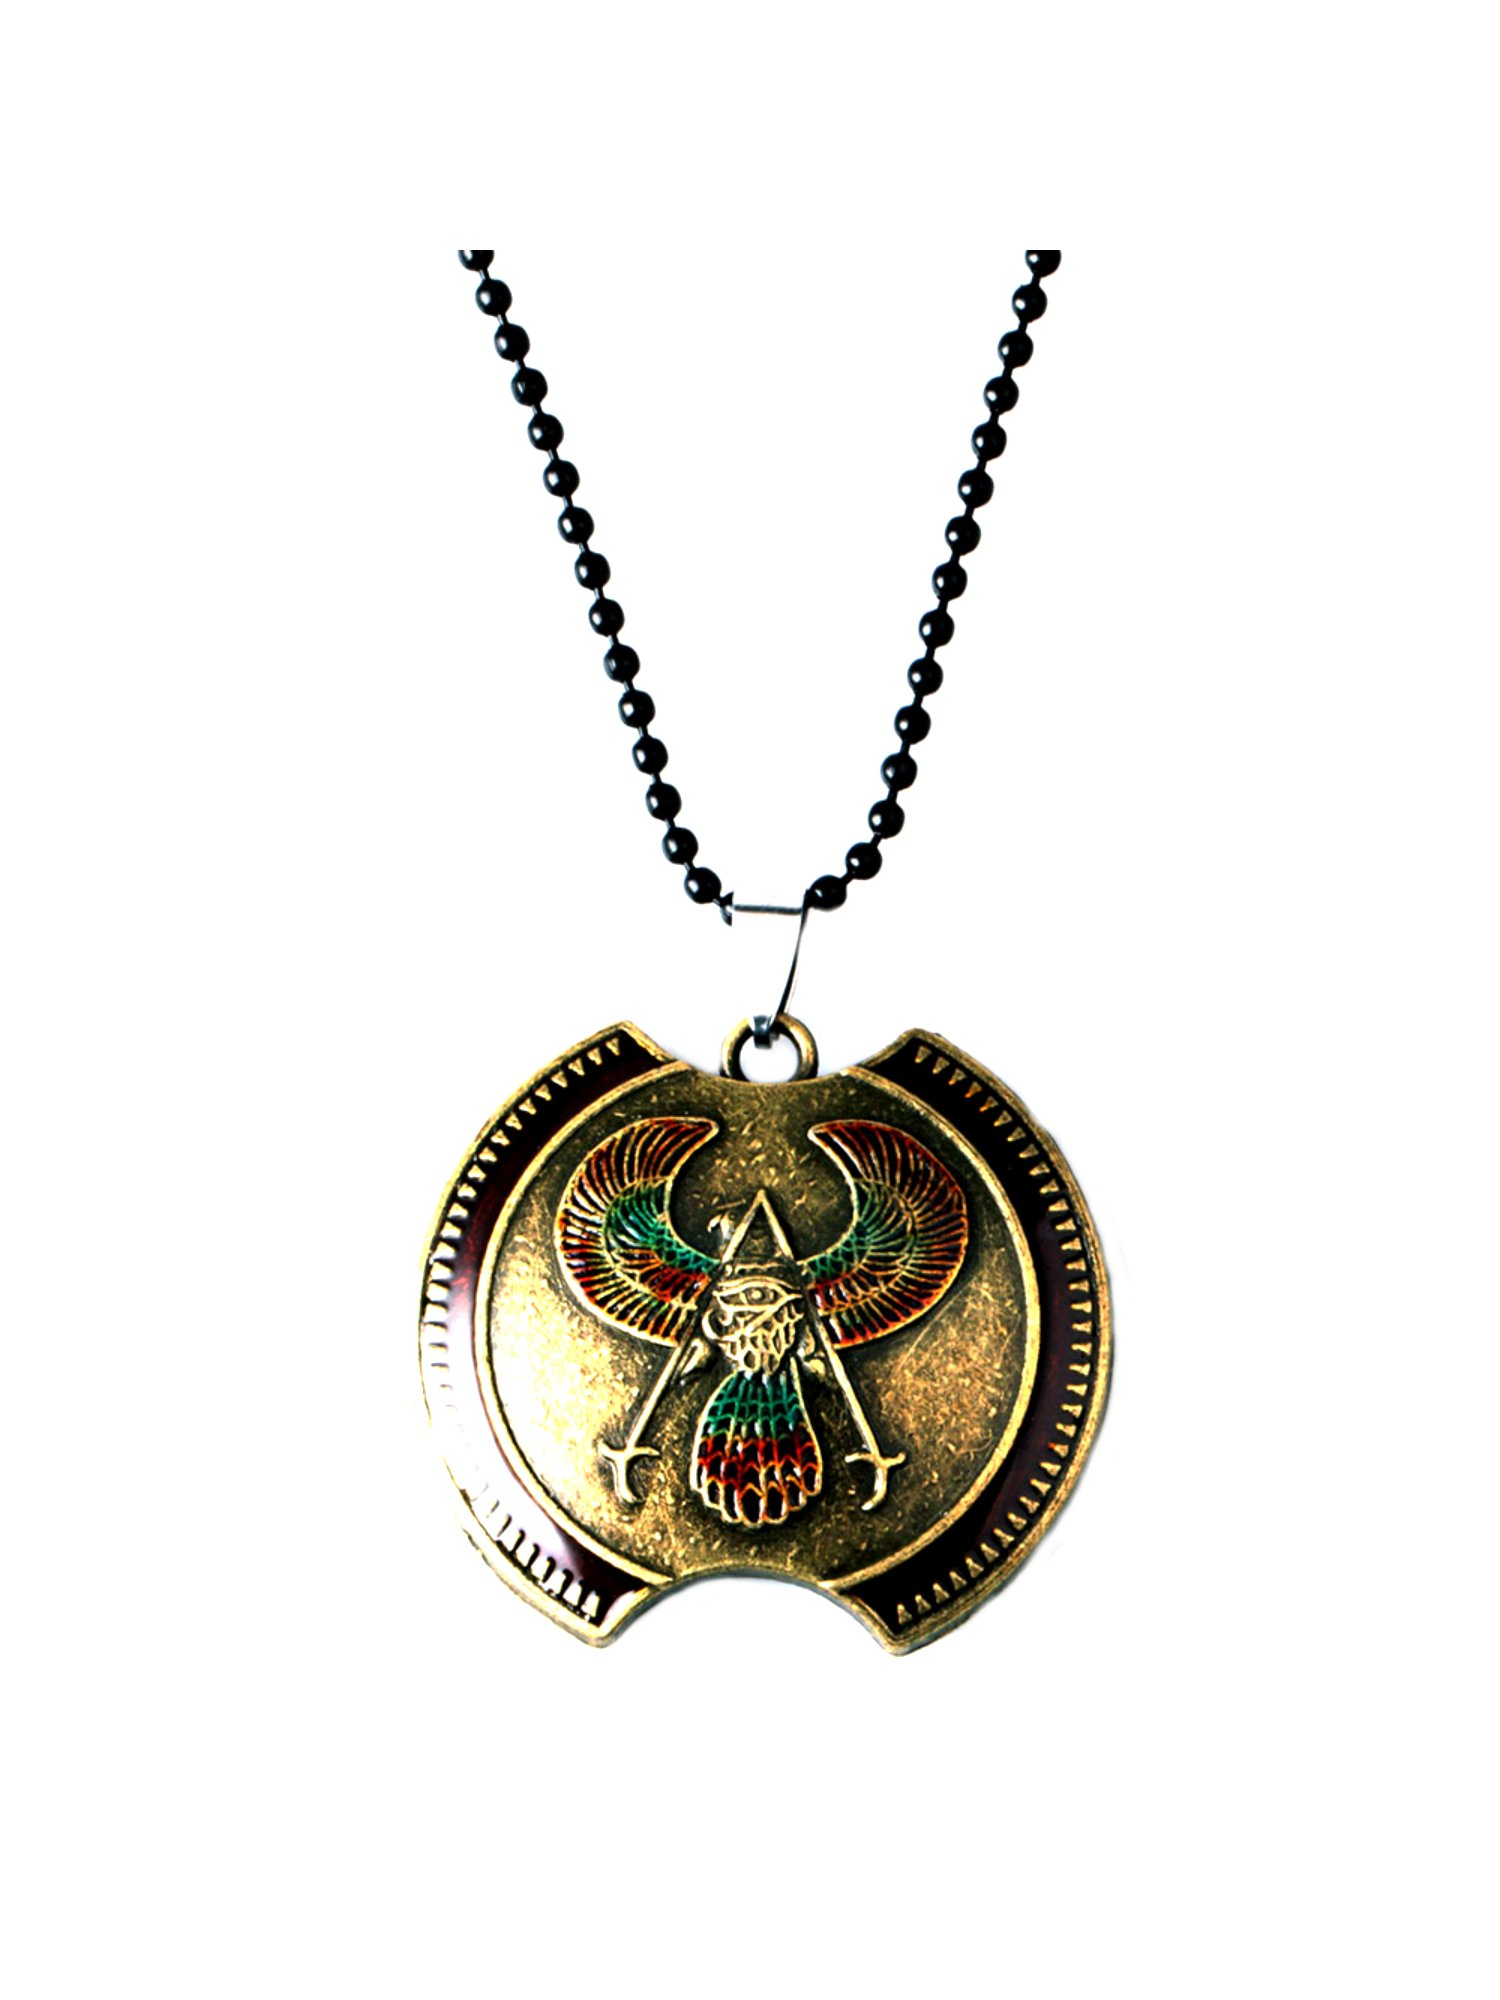 Assassin's Creed Origins Pendant Necklace Character Cartoon Superhero Gaming Console PC Games Logo Theme Cosplay Premium Quality Detailed Jewelry Gift Series